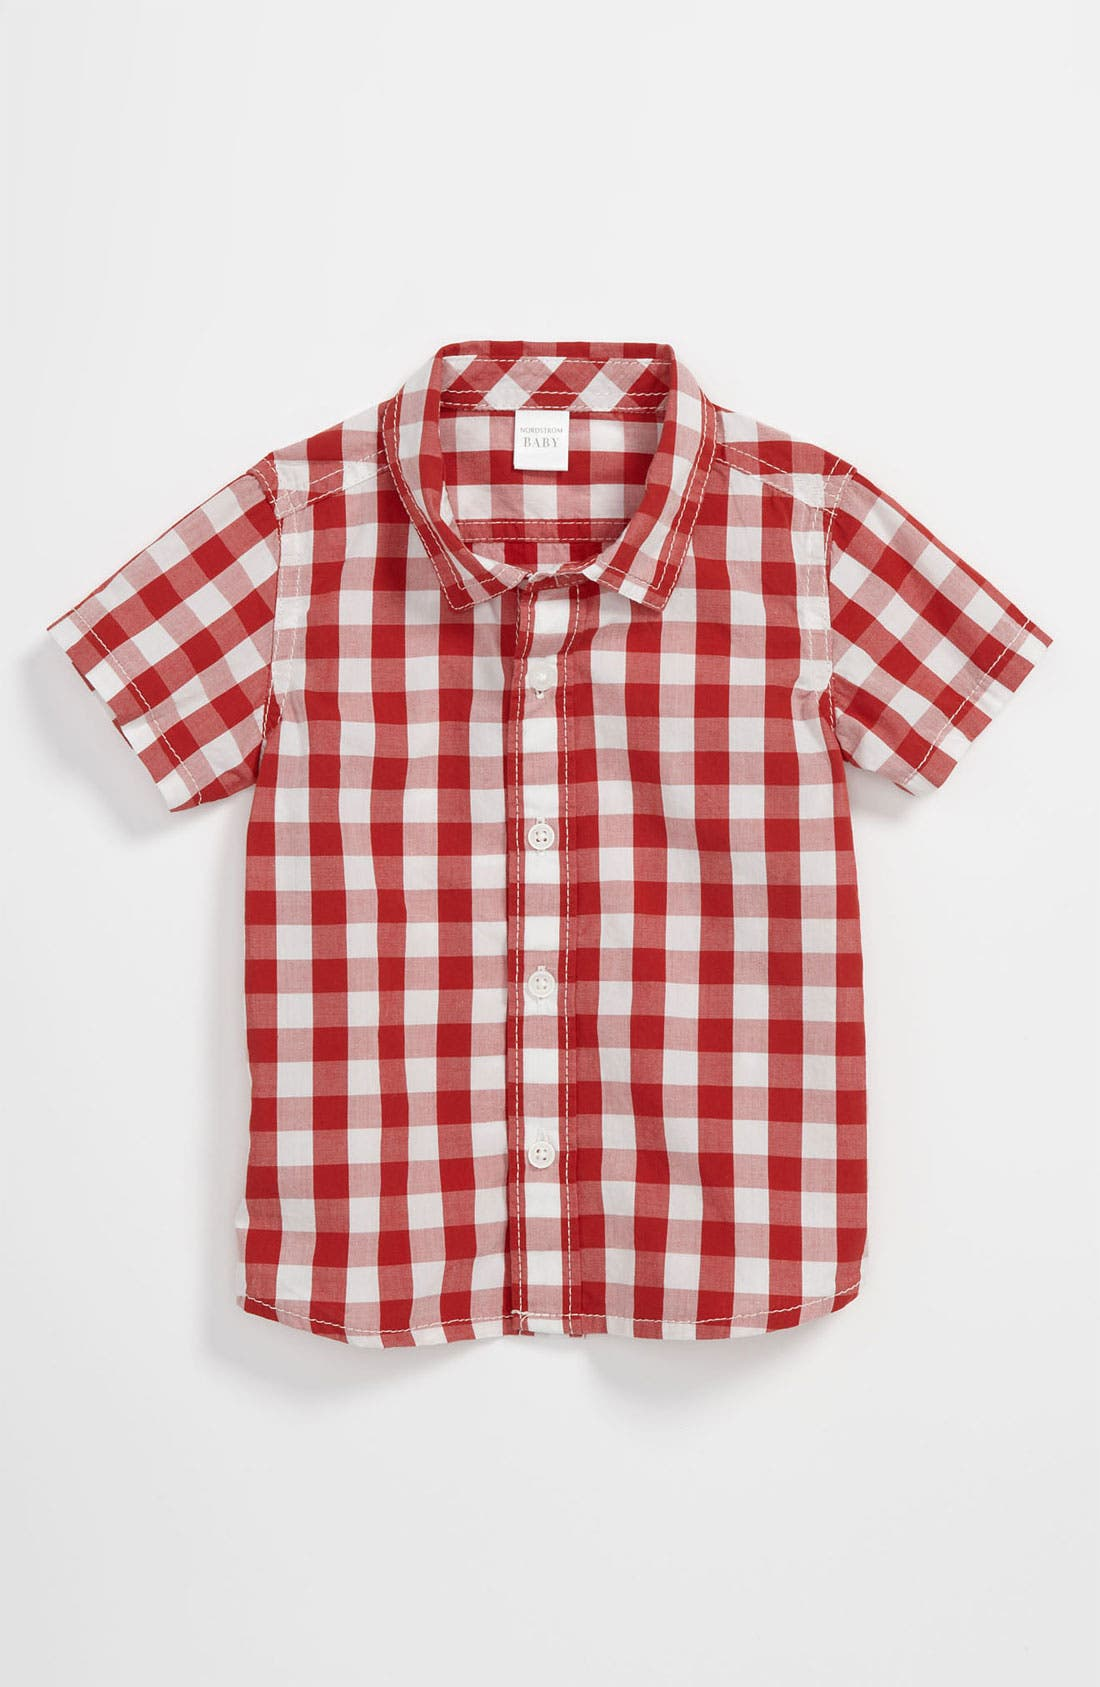 Alternate Image 1 Selected - Nordstrom Baby Woven Shirt (Infant)